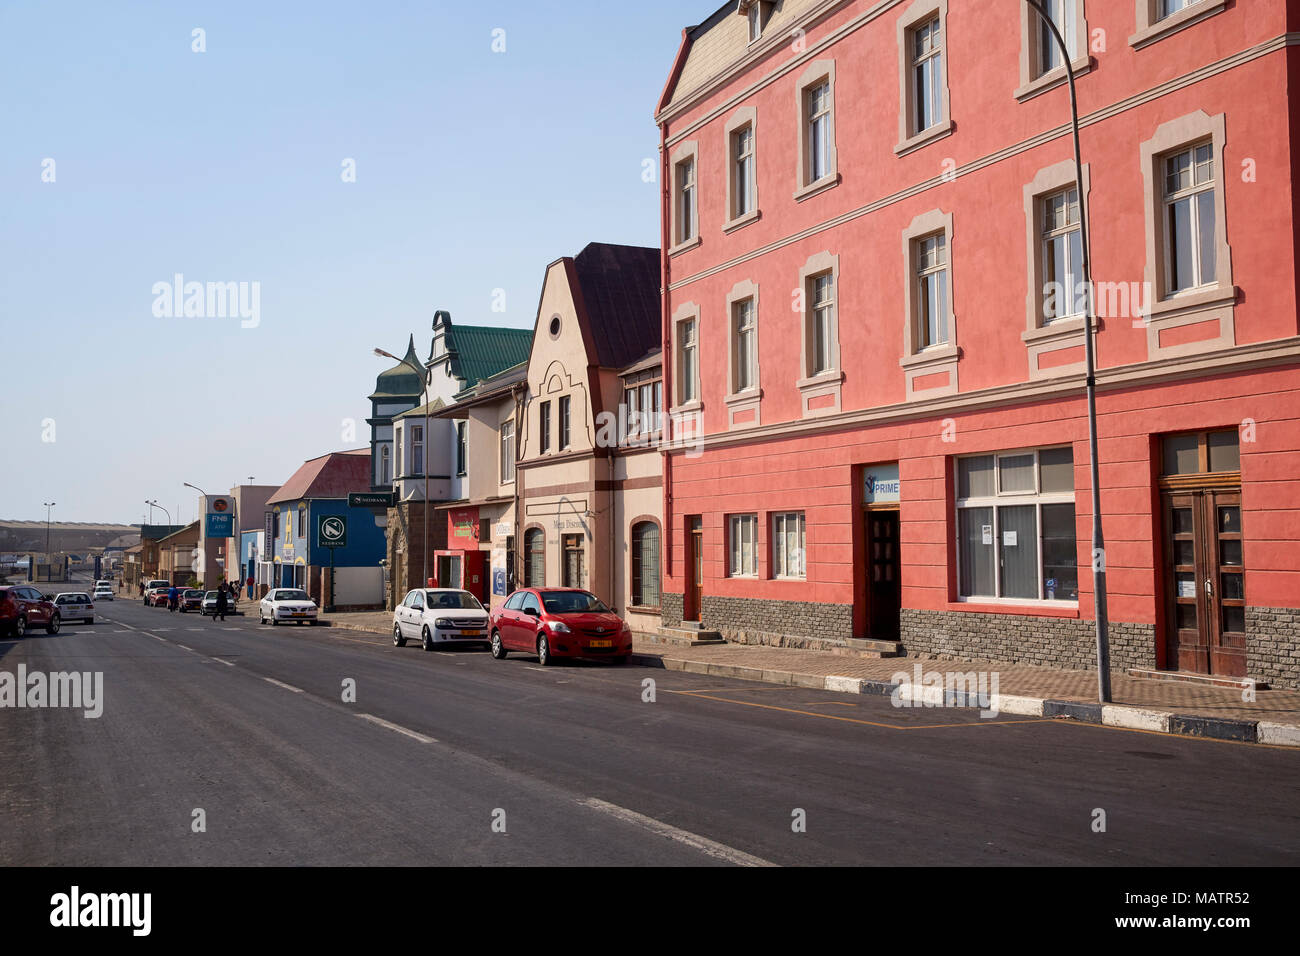 Bismarck street with colonial buildings in Luderitz, Namibia, Africa - Stock Image